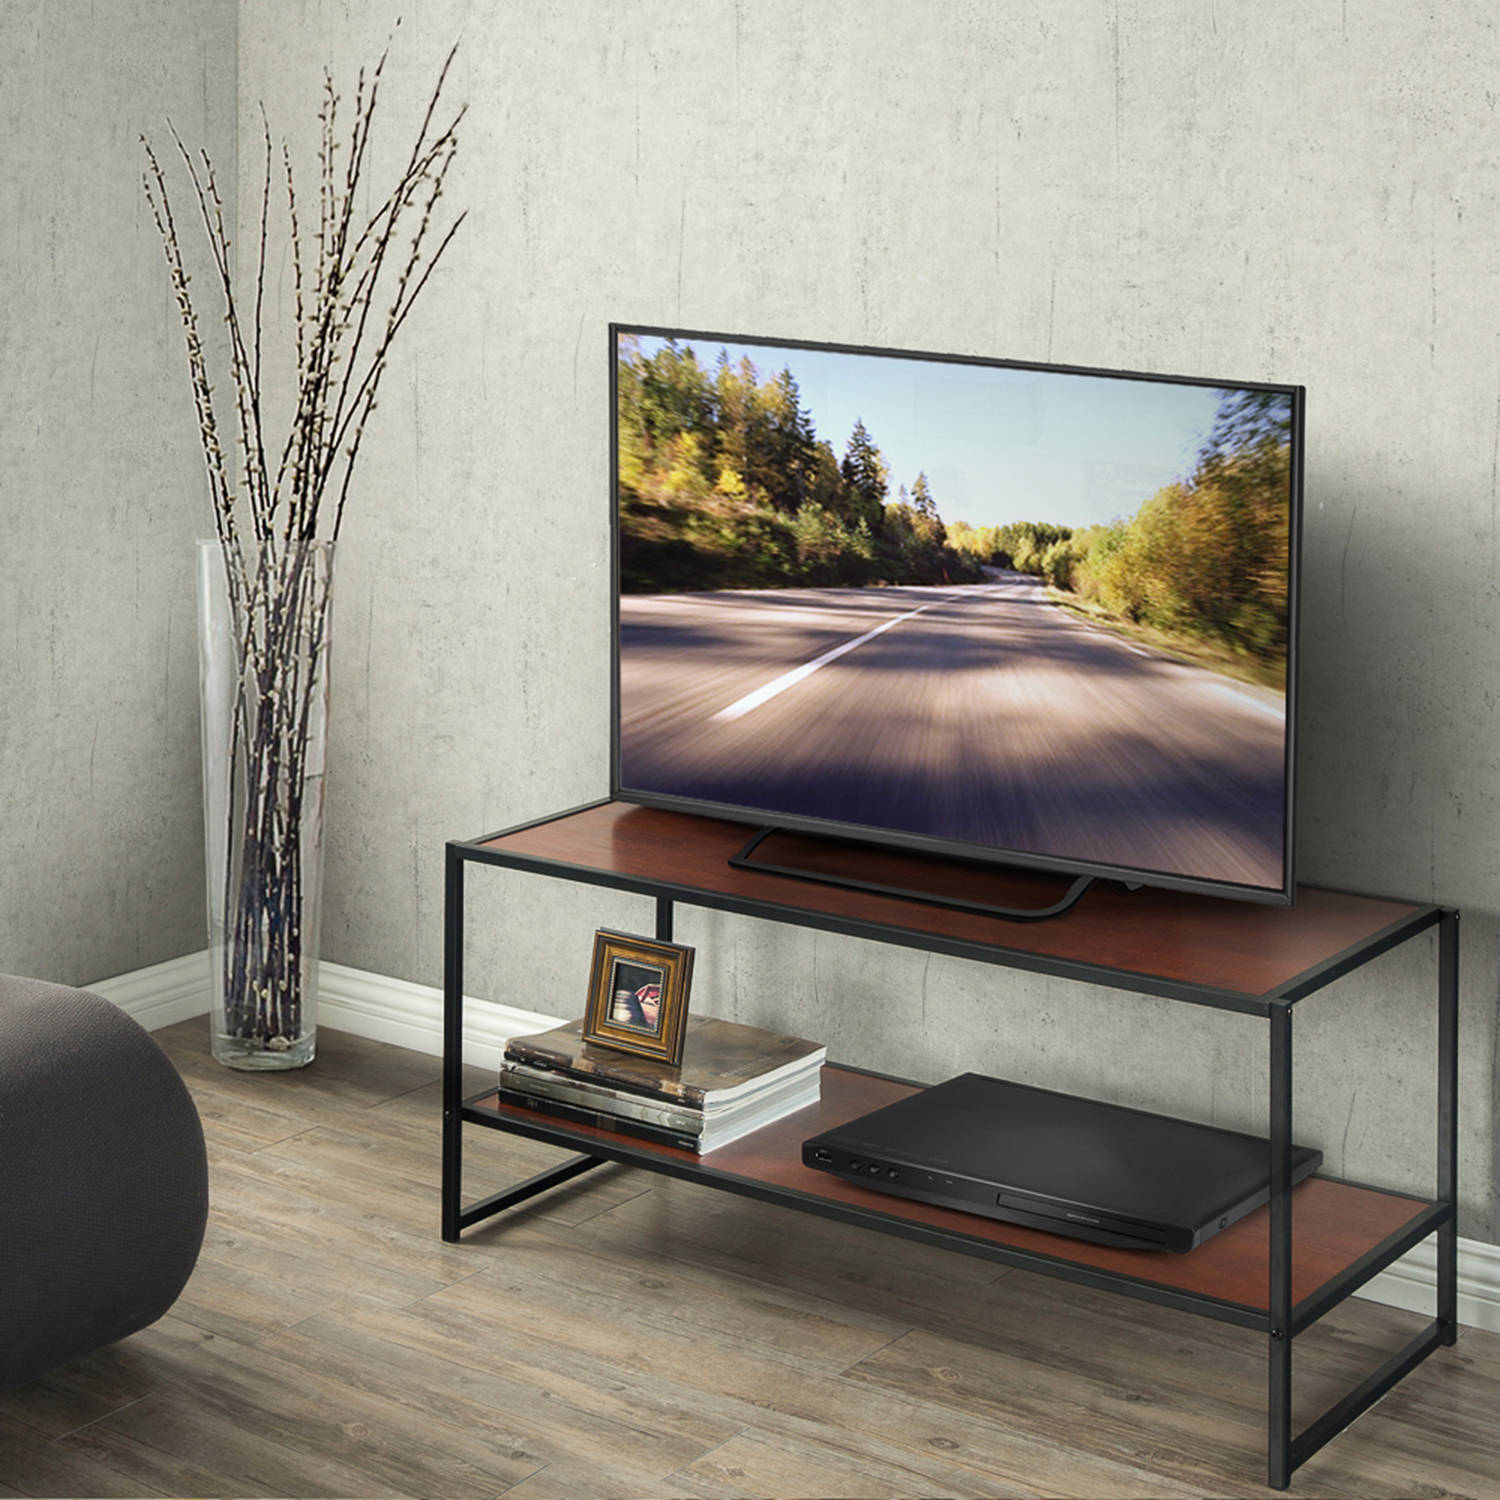 Modern Studio Collection TV Media Stand/Table For TVs up to 42""